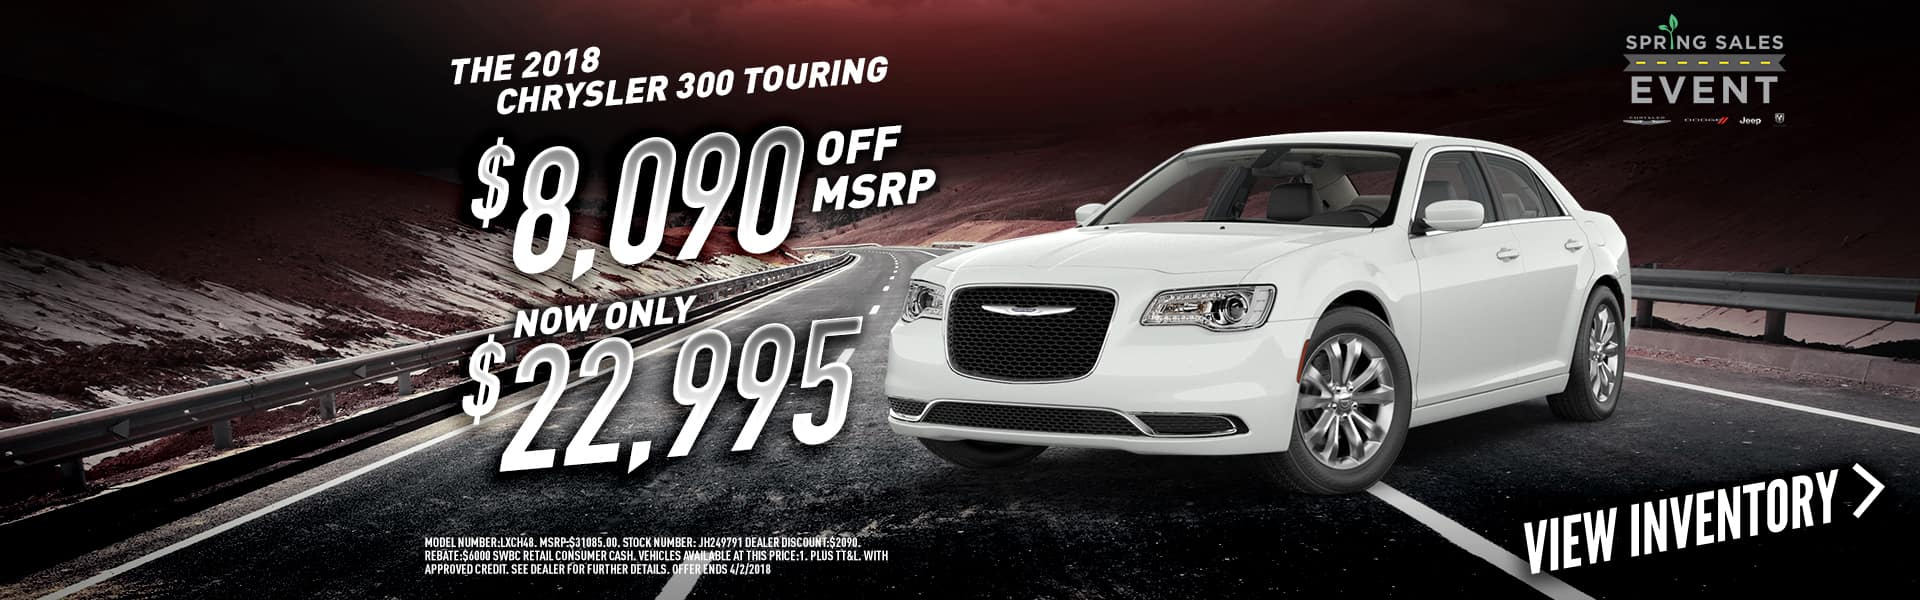 2018-beaumont-tx-for-sale-chrysler-300-touring